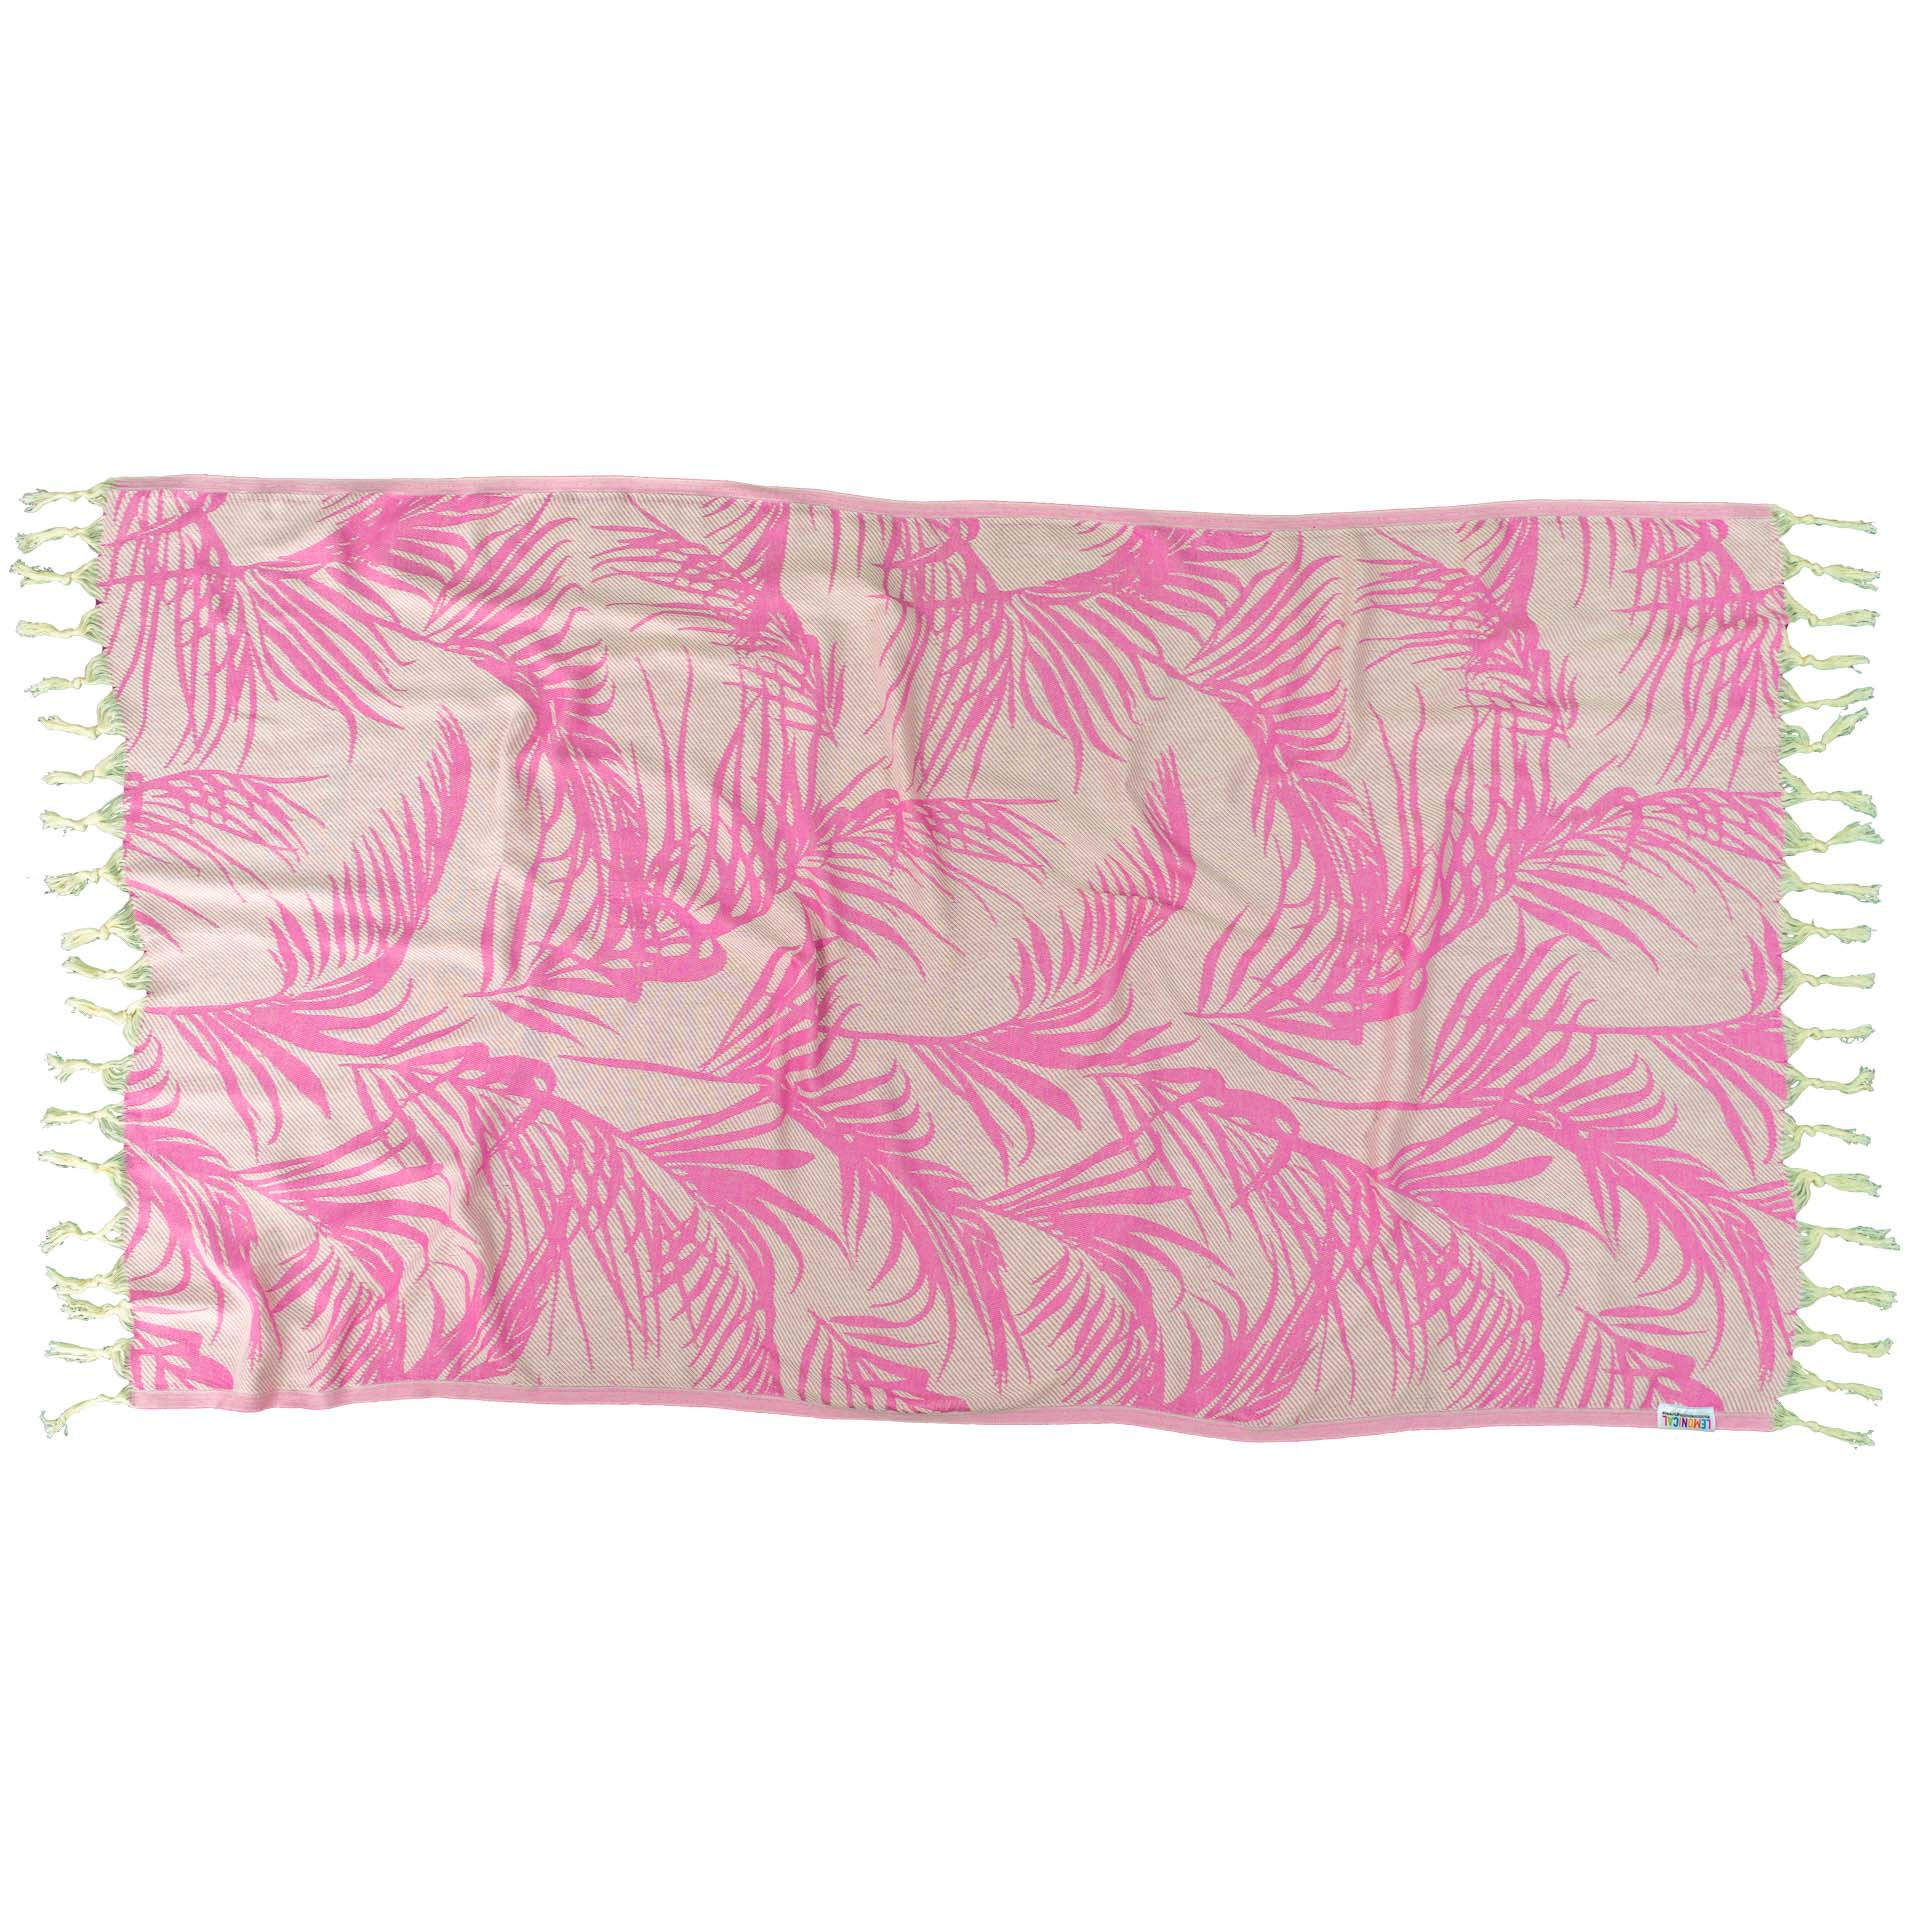 PINK FEATHER-Towel-Lemonical-2